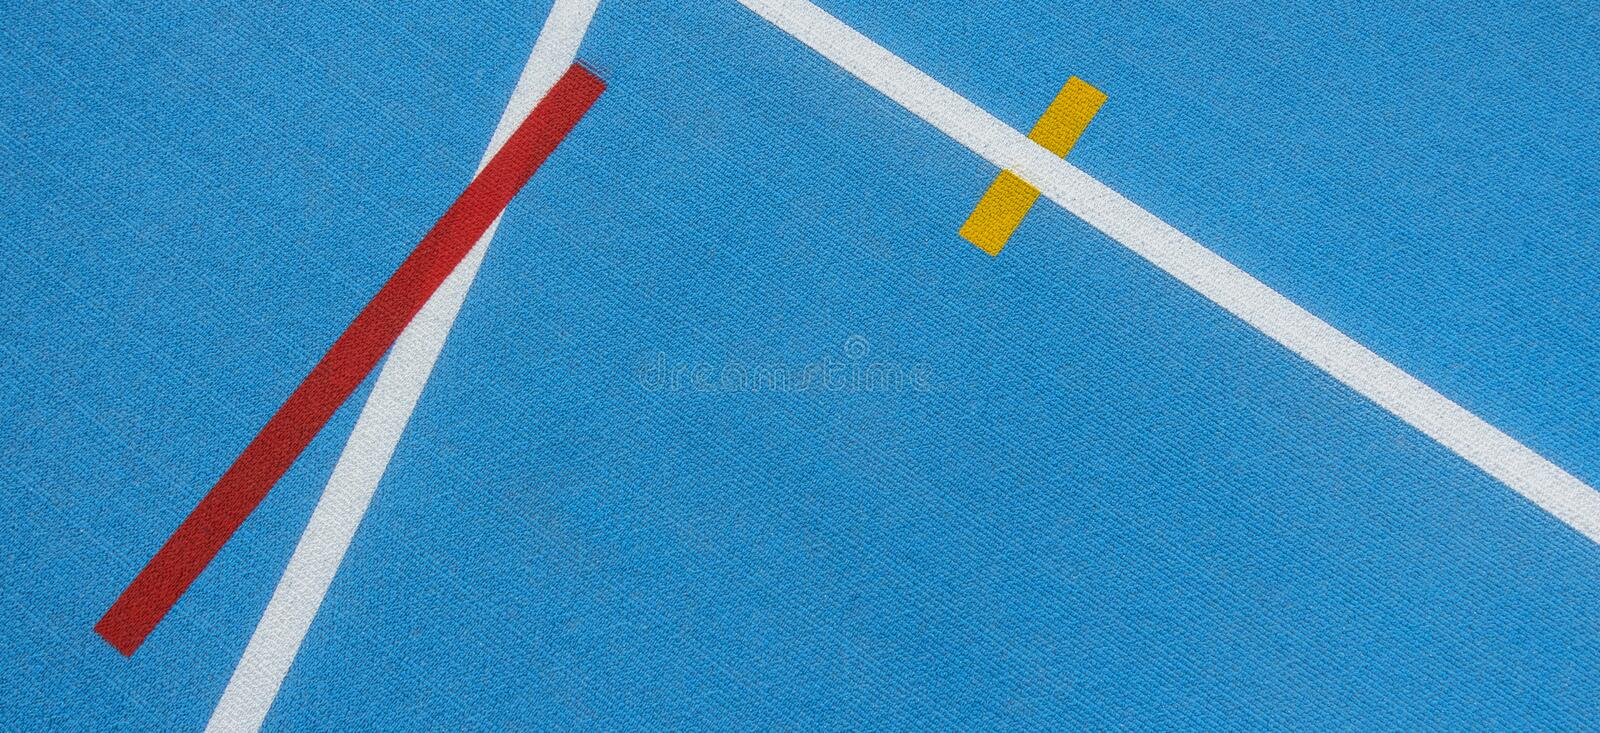 Sport background. Blue running track with white lines, yellow and red mark in sport stadium. Top view. Sport background. Blue running track with white lines stock photo